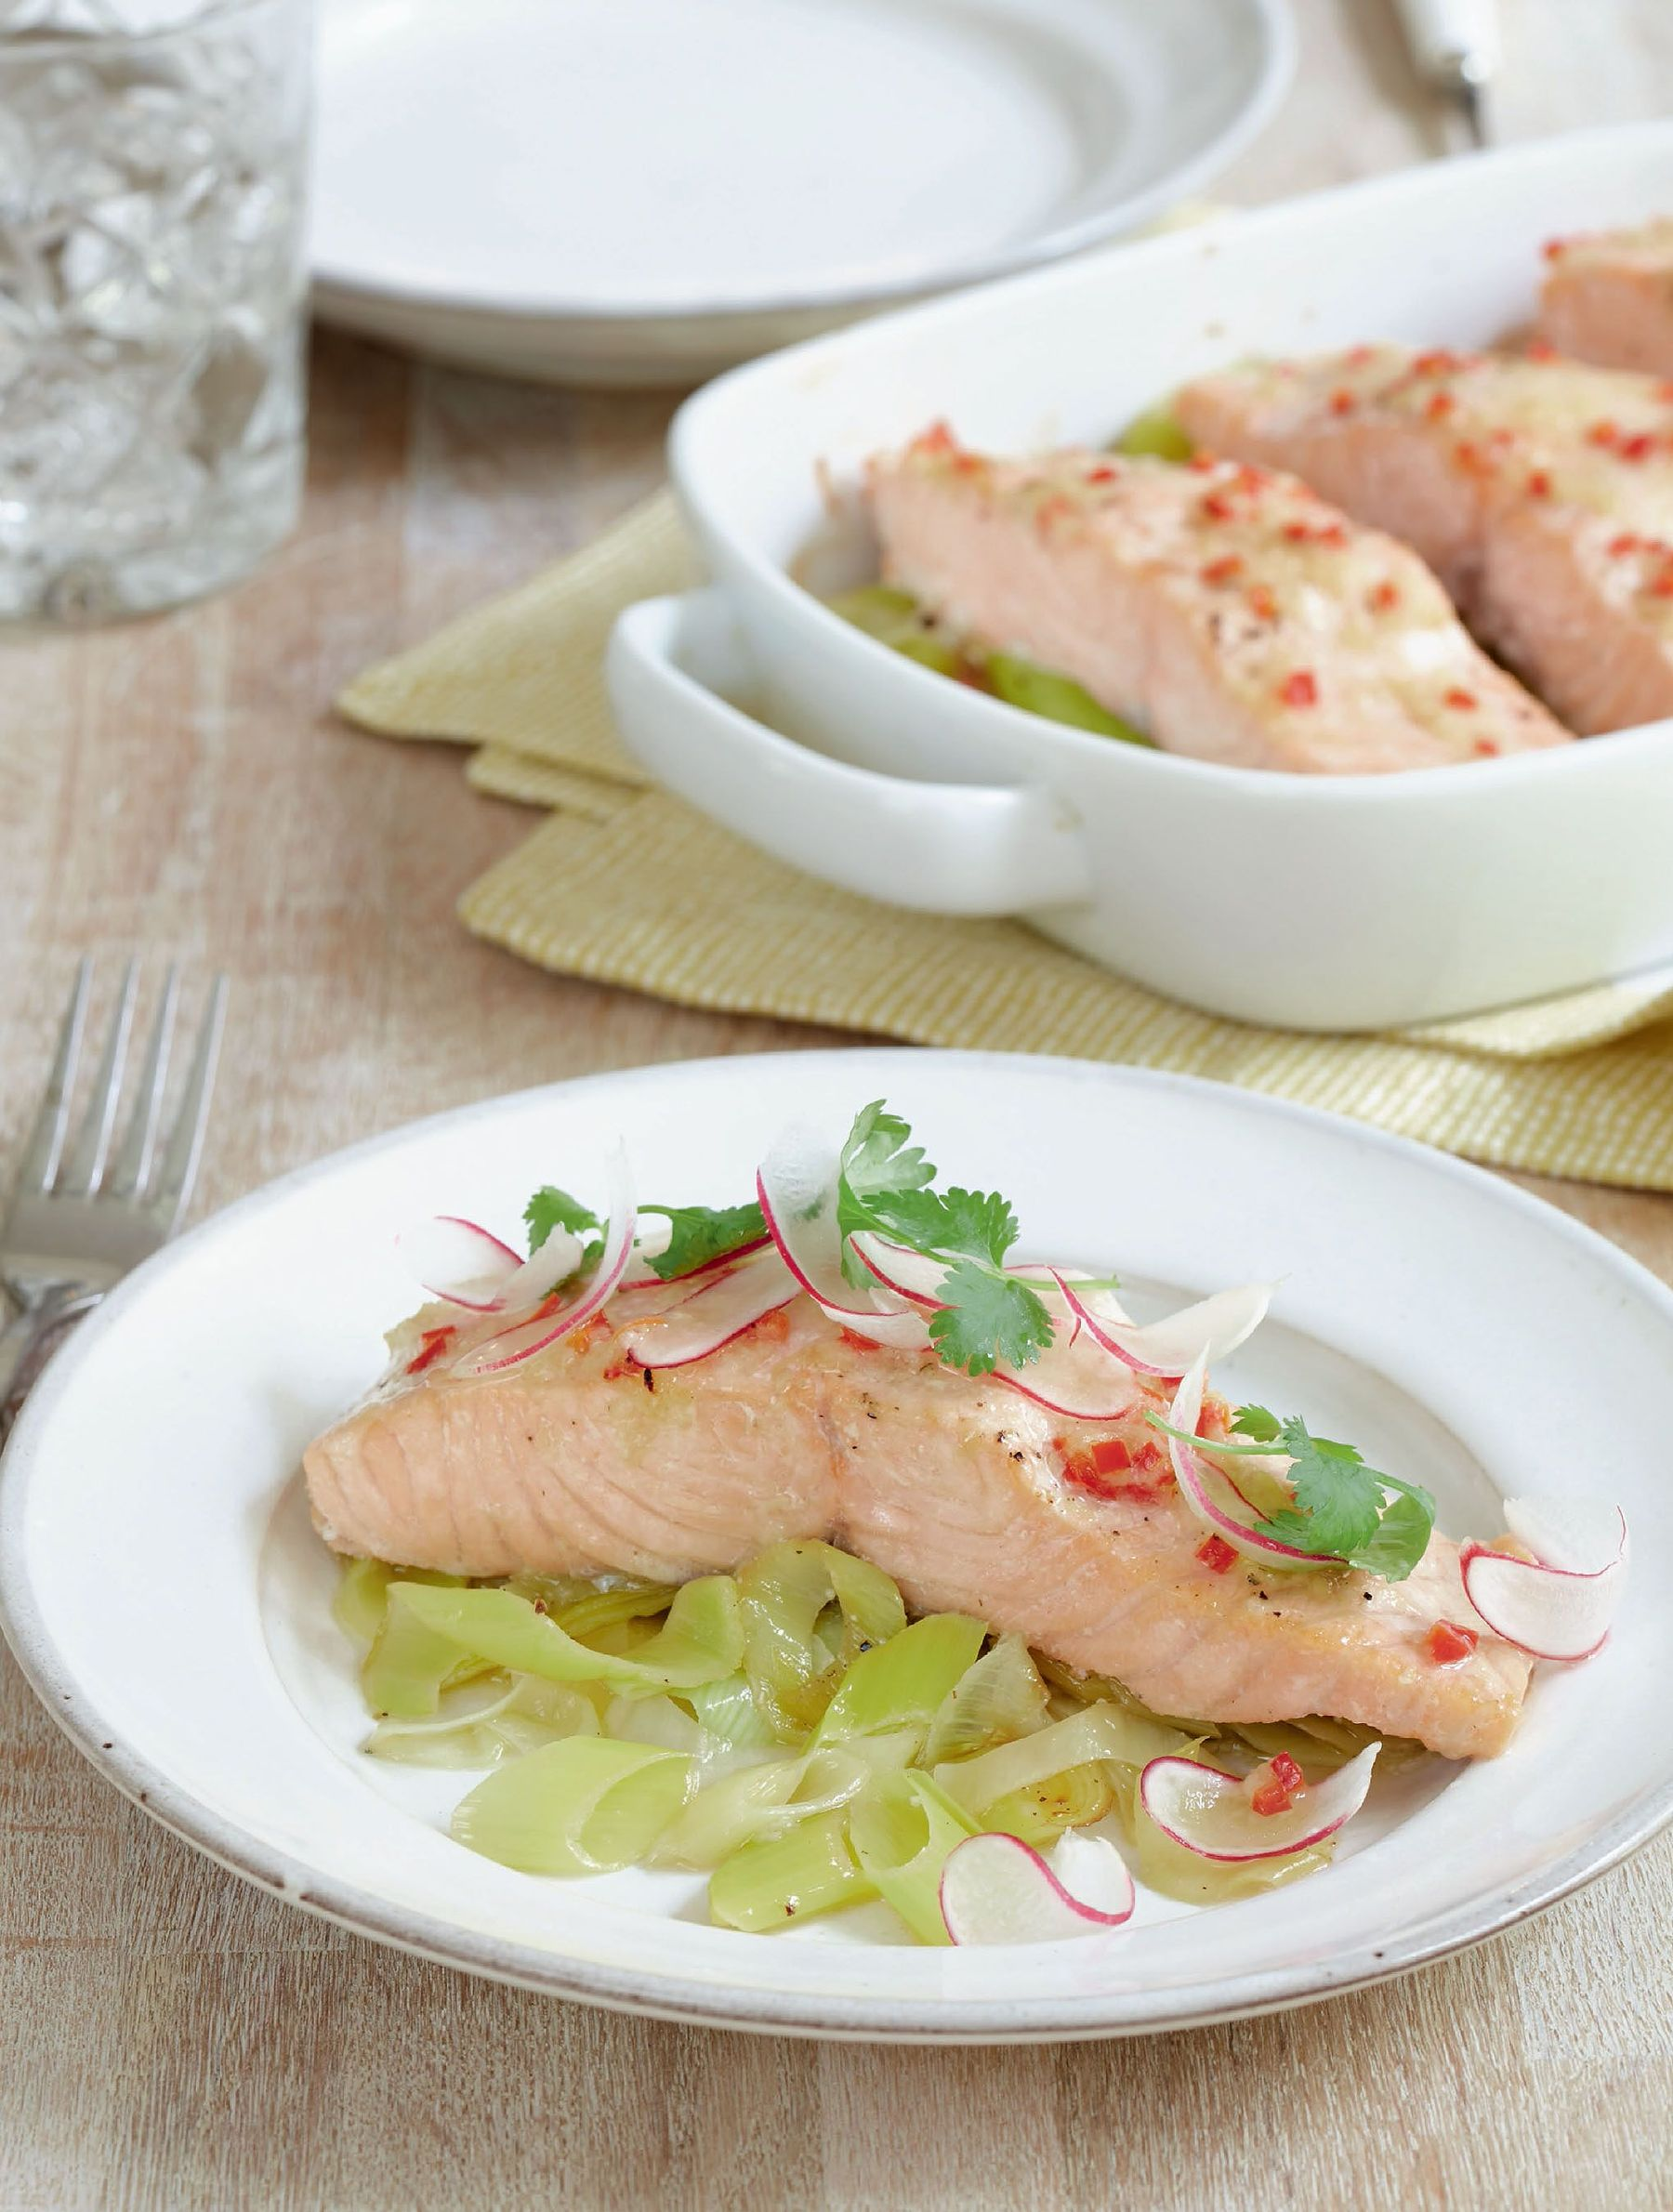 10 midweek family meal recipes from mary berry the happy foodie best mary berry dinner recipes forumfinder Choice Image